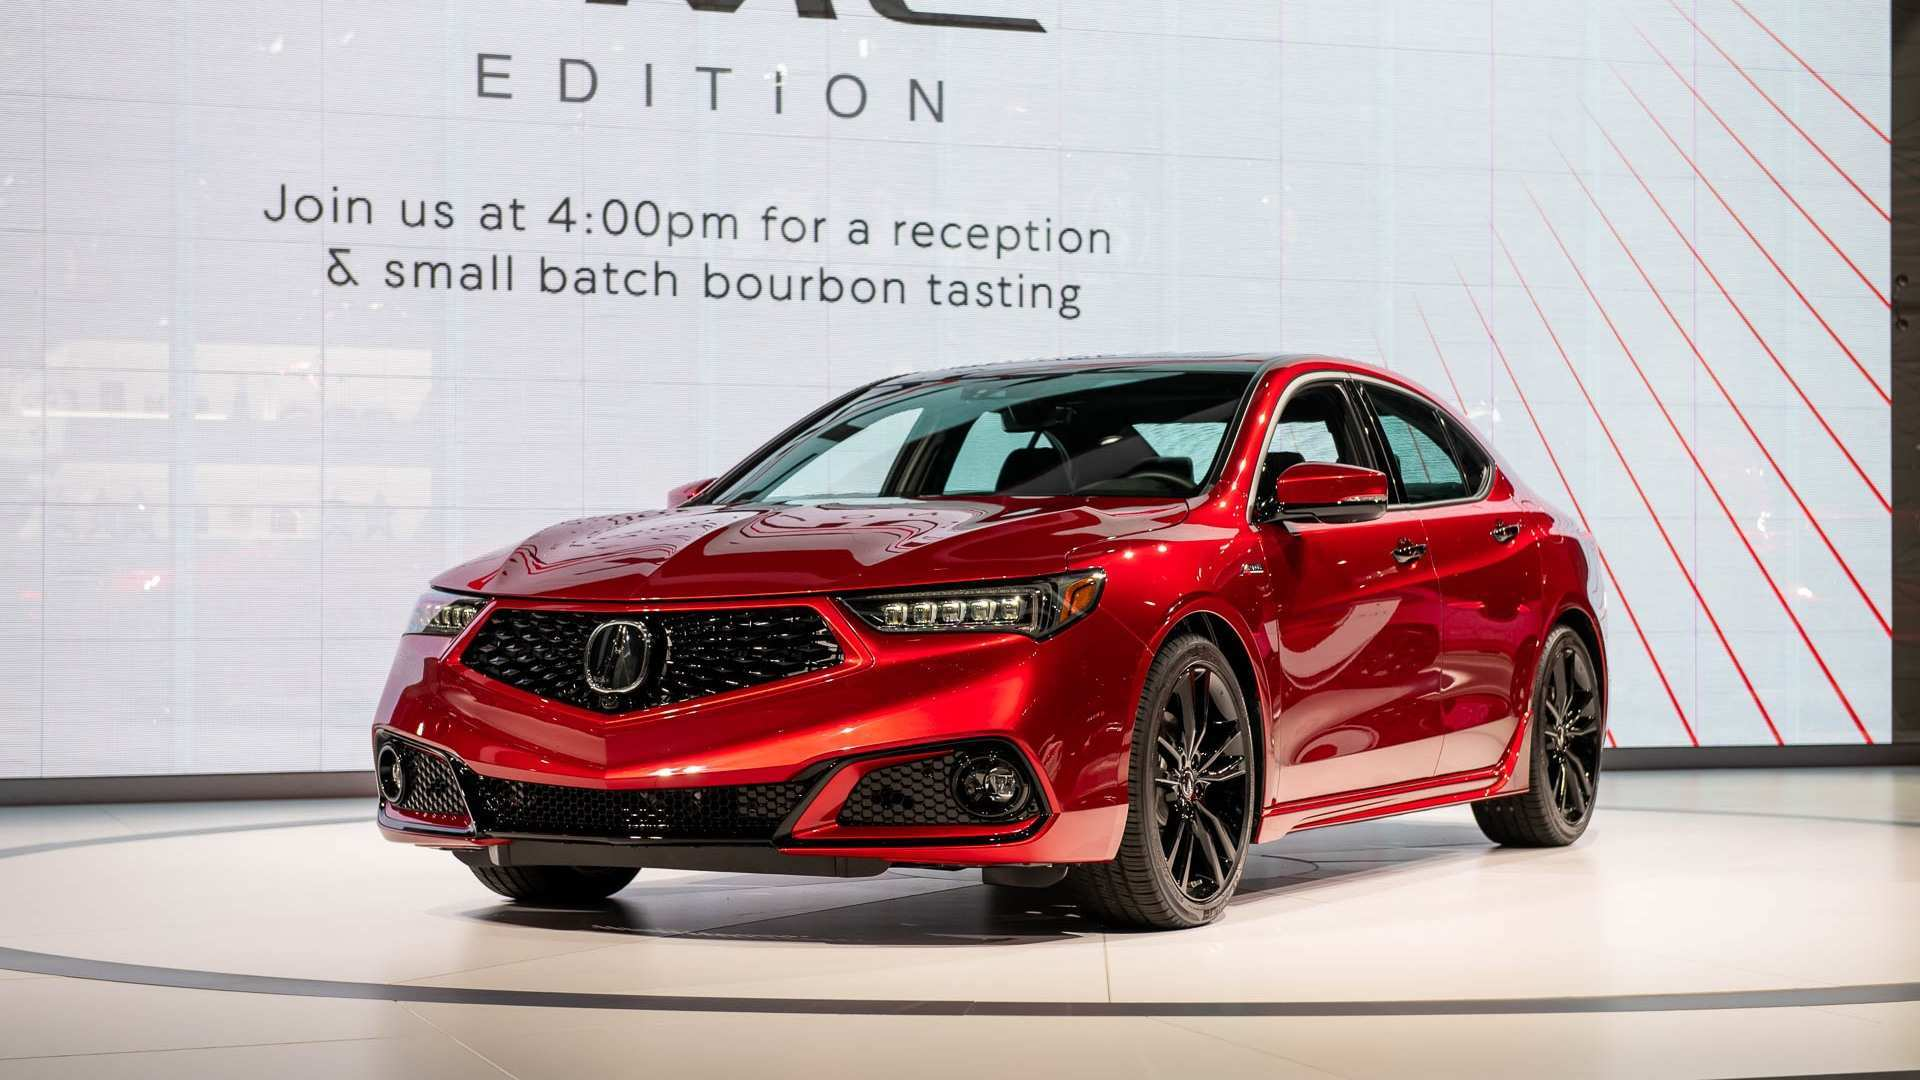 35 Great 2020 Acura Pmc Edition Specs by 2020 Acura Pmc Edition